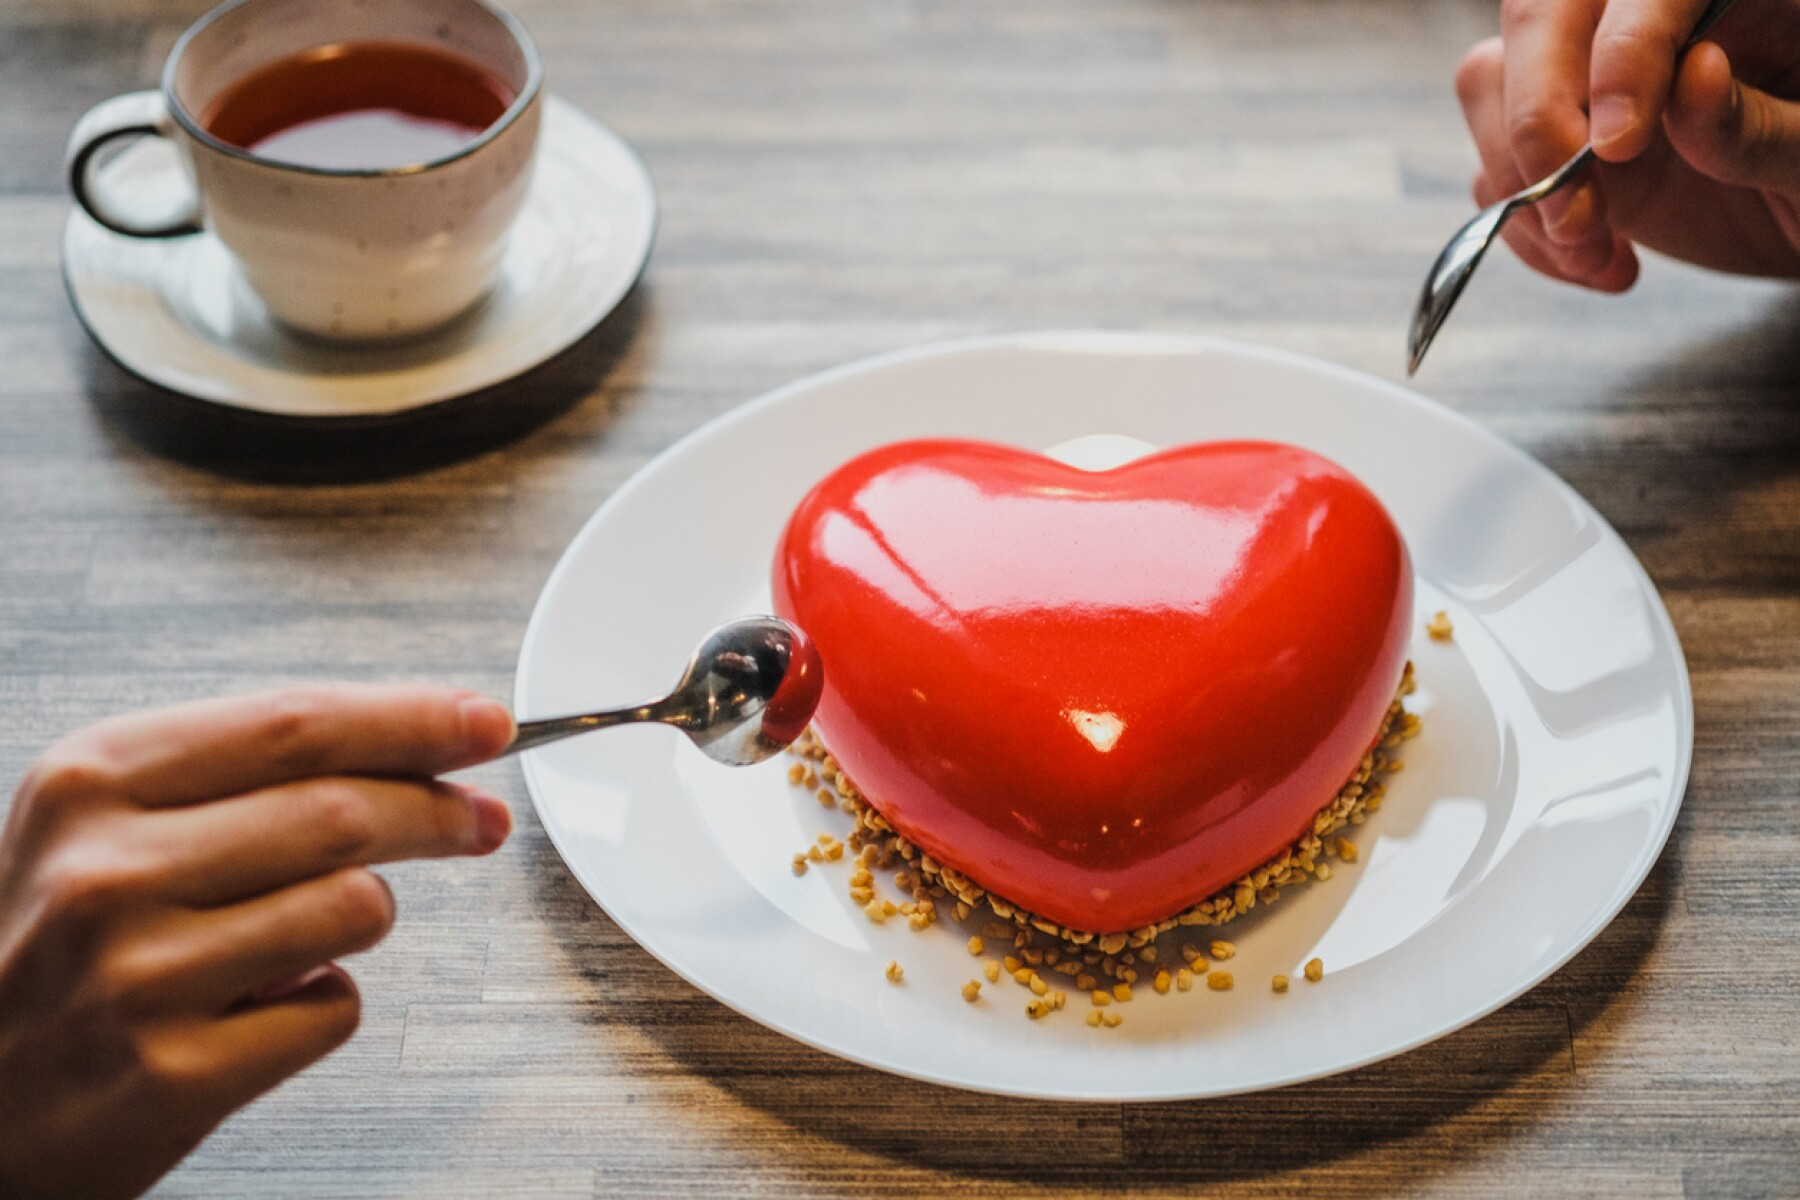 Red cake in the shape of a heart is on the table. Two hands with spoons, male and female, stretch into a pie.